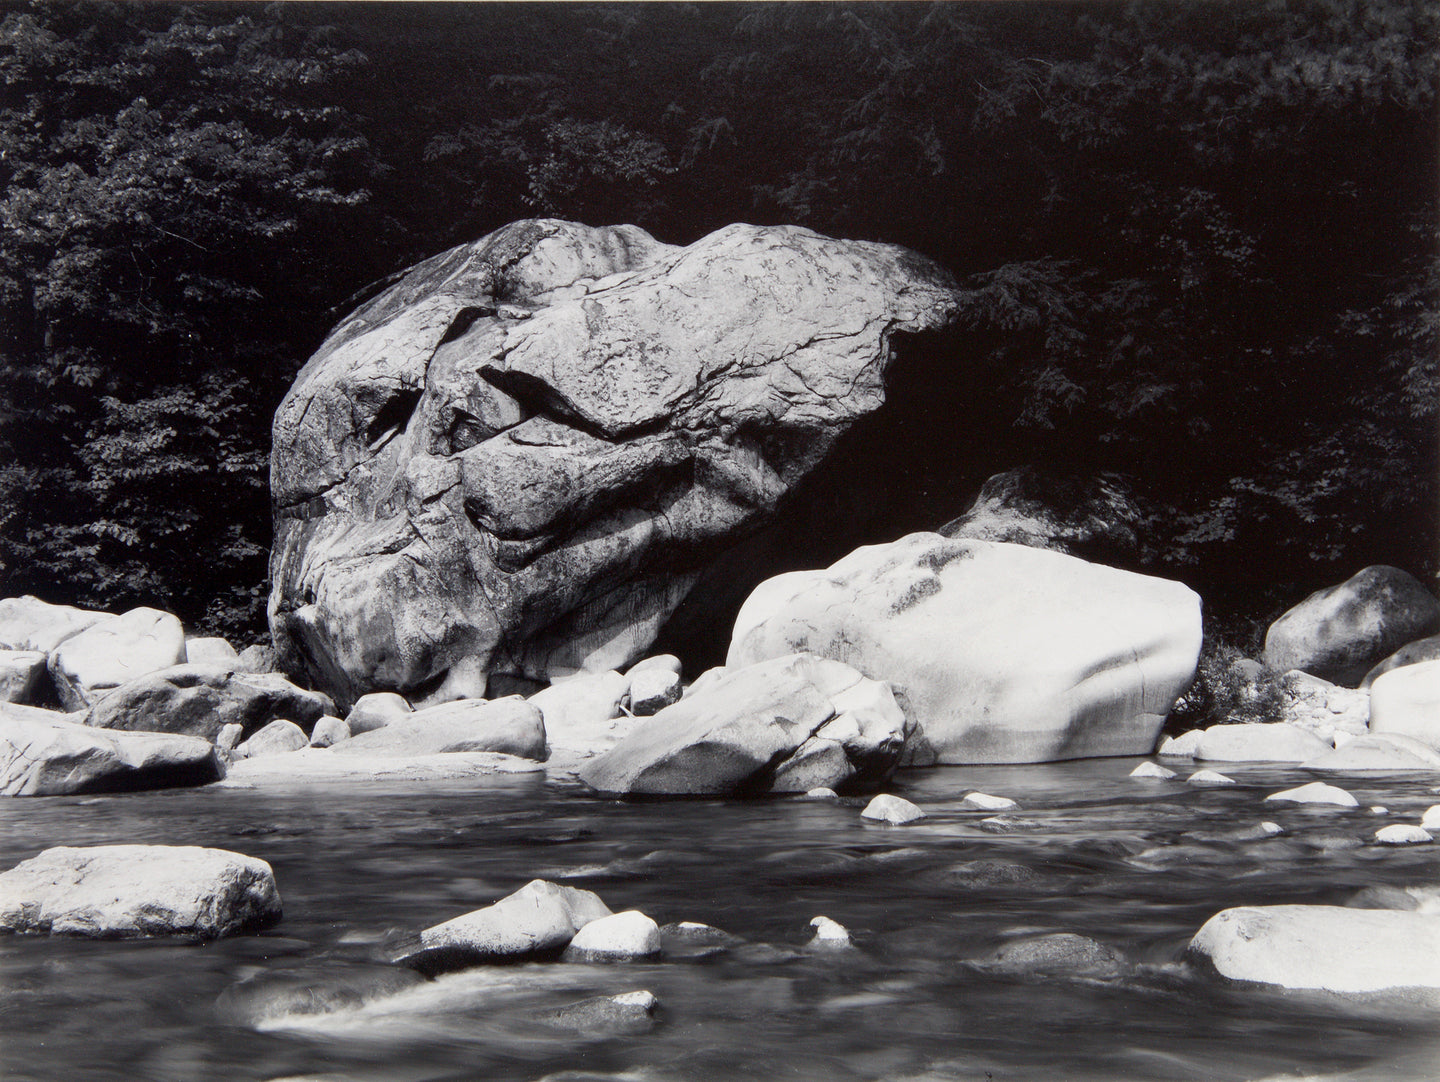 ROCKS ALONG THE SWIFT RIVER